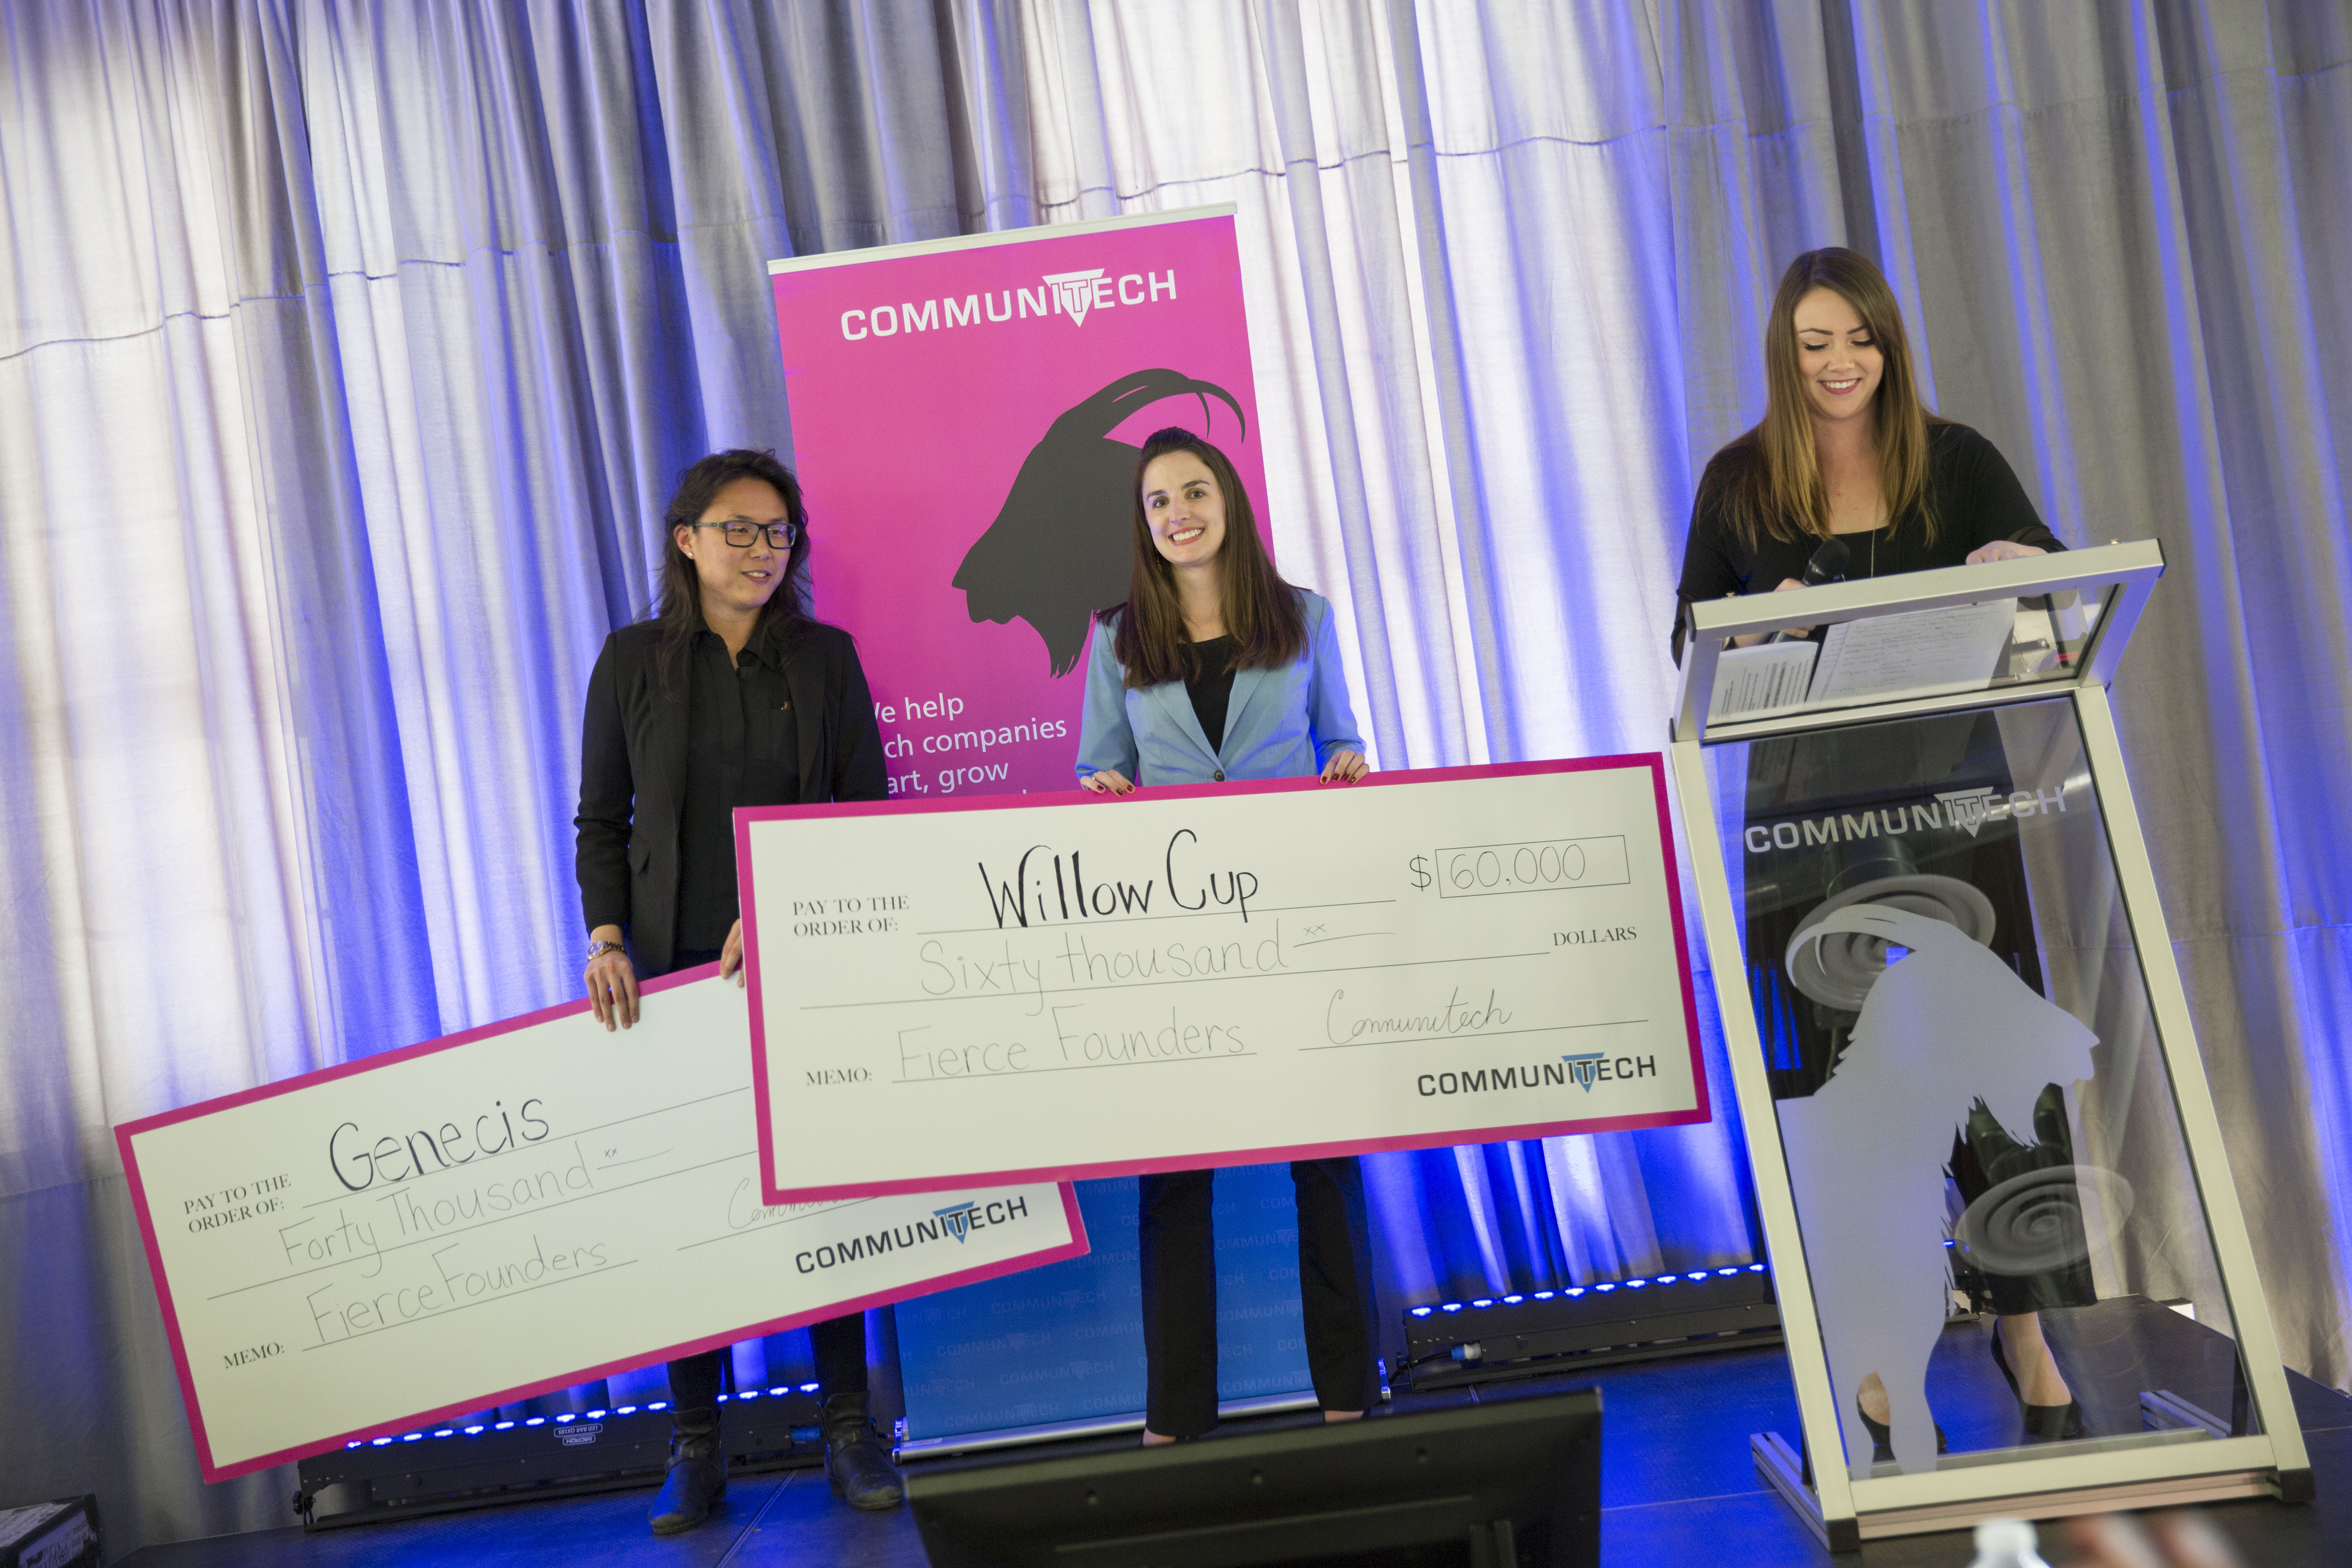 Winners in the Fierce Founders pitch competition, from left, Luna Yu, CEO at Genecis EnviroTech, and Sarah Bonham, CEO of Willow Cup. At right, event moderator Holly Pearson. (Communitech photo: Meghan Thompson)